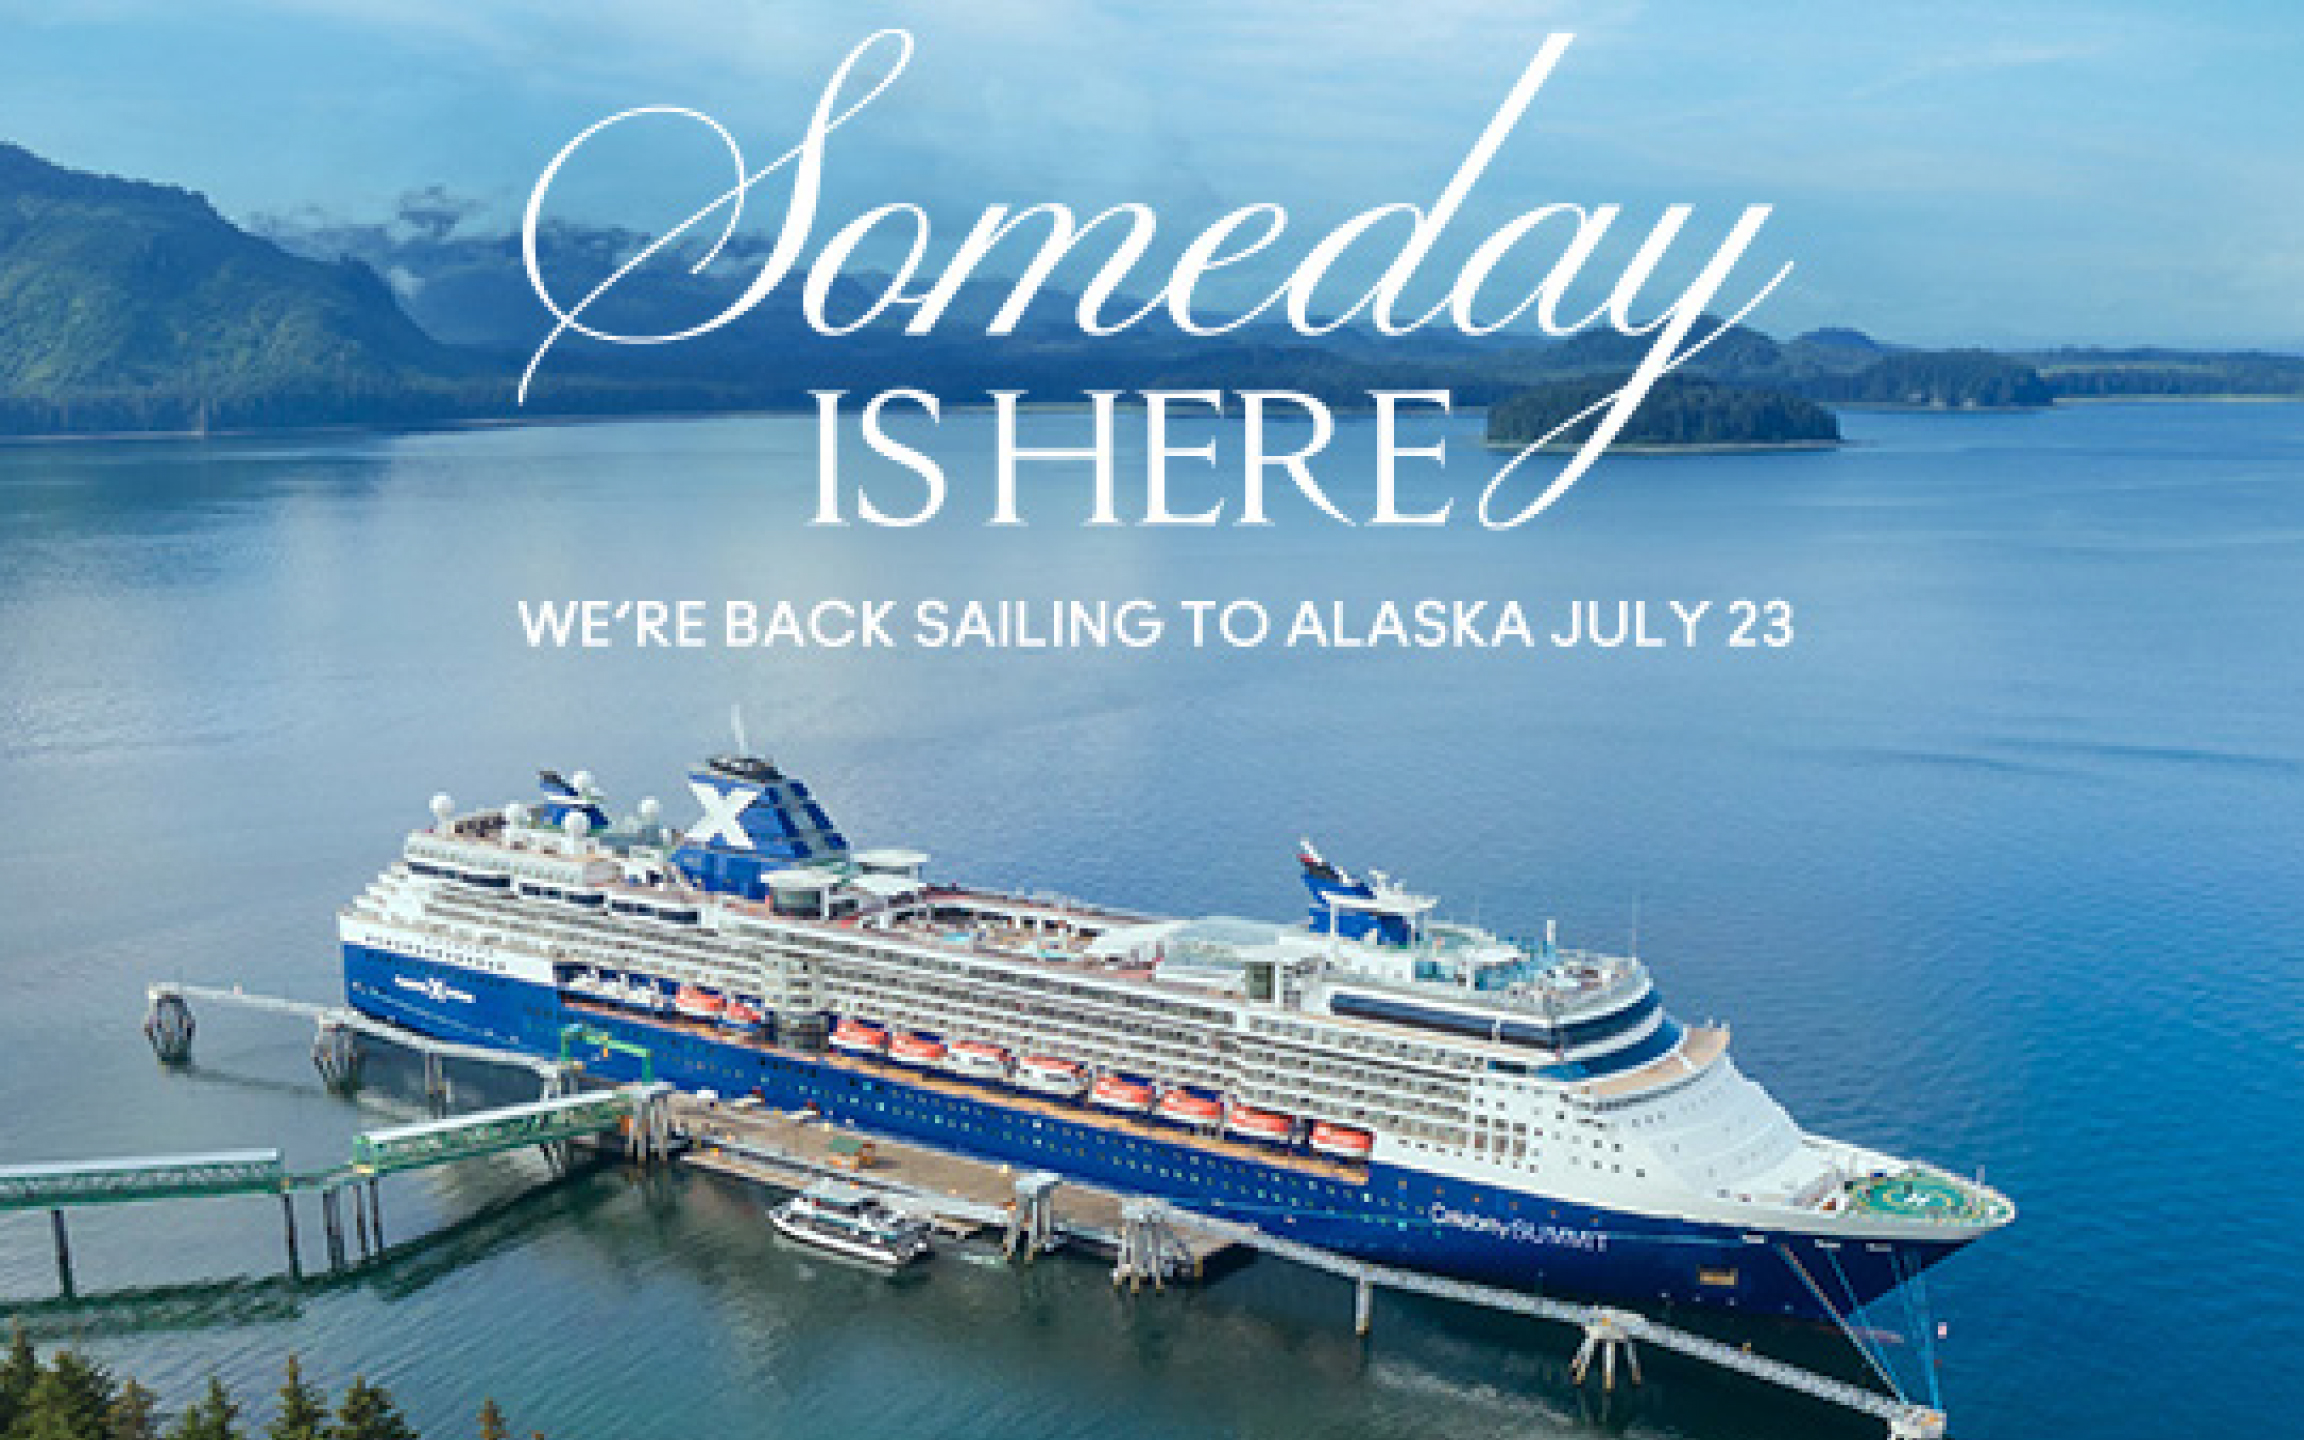 Someday is HERE - Sailings to Alaska on July 23